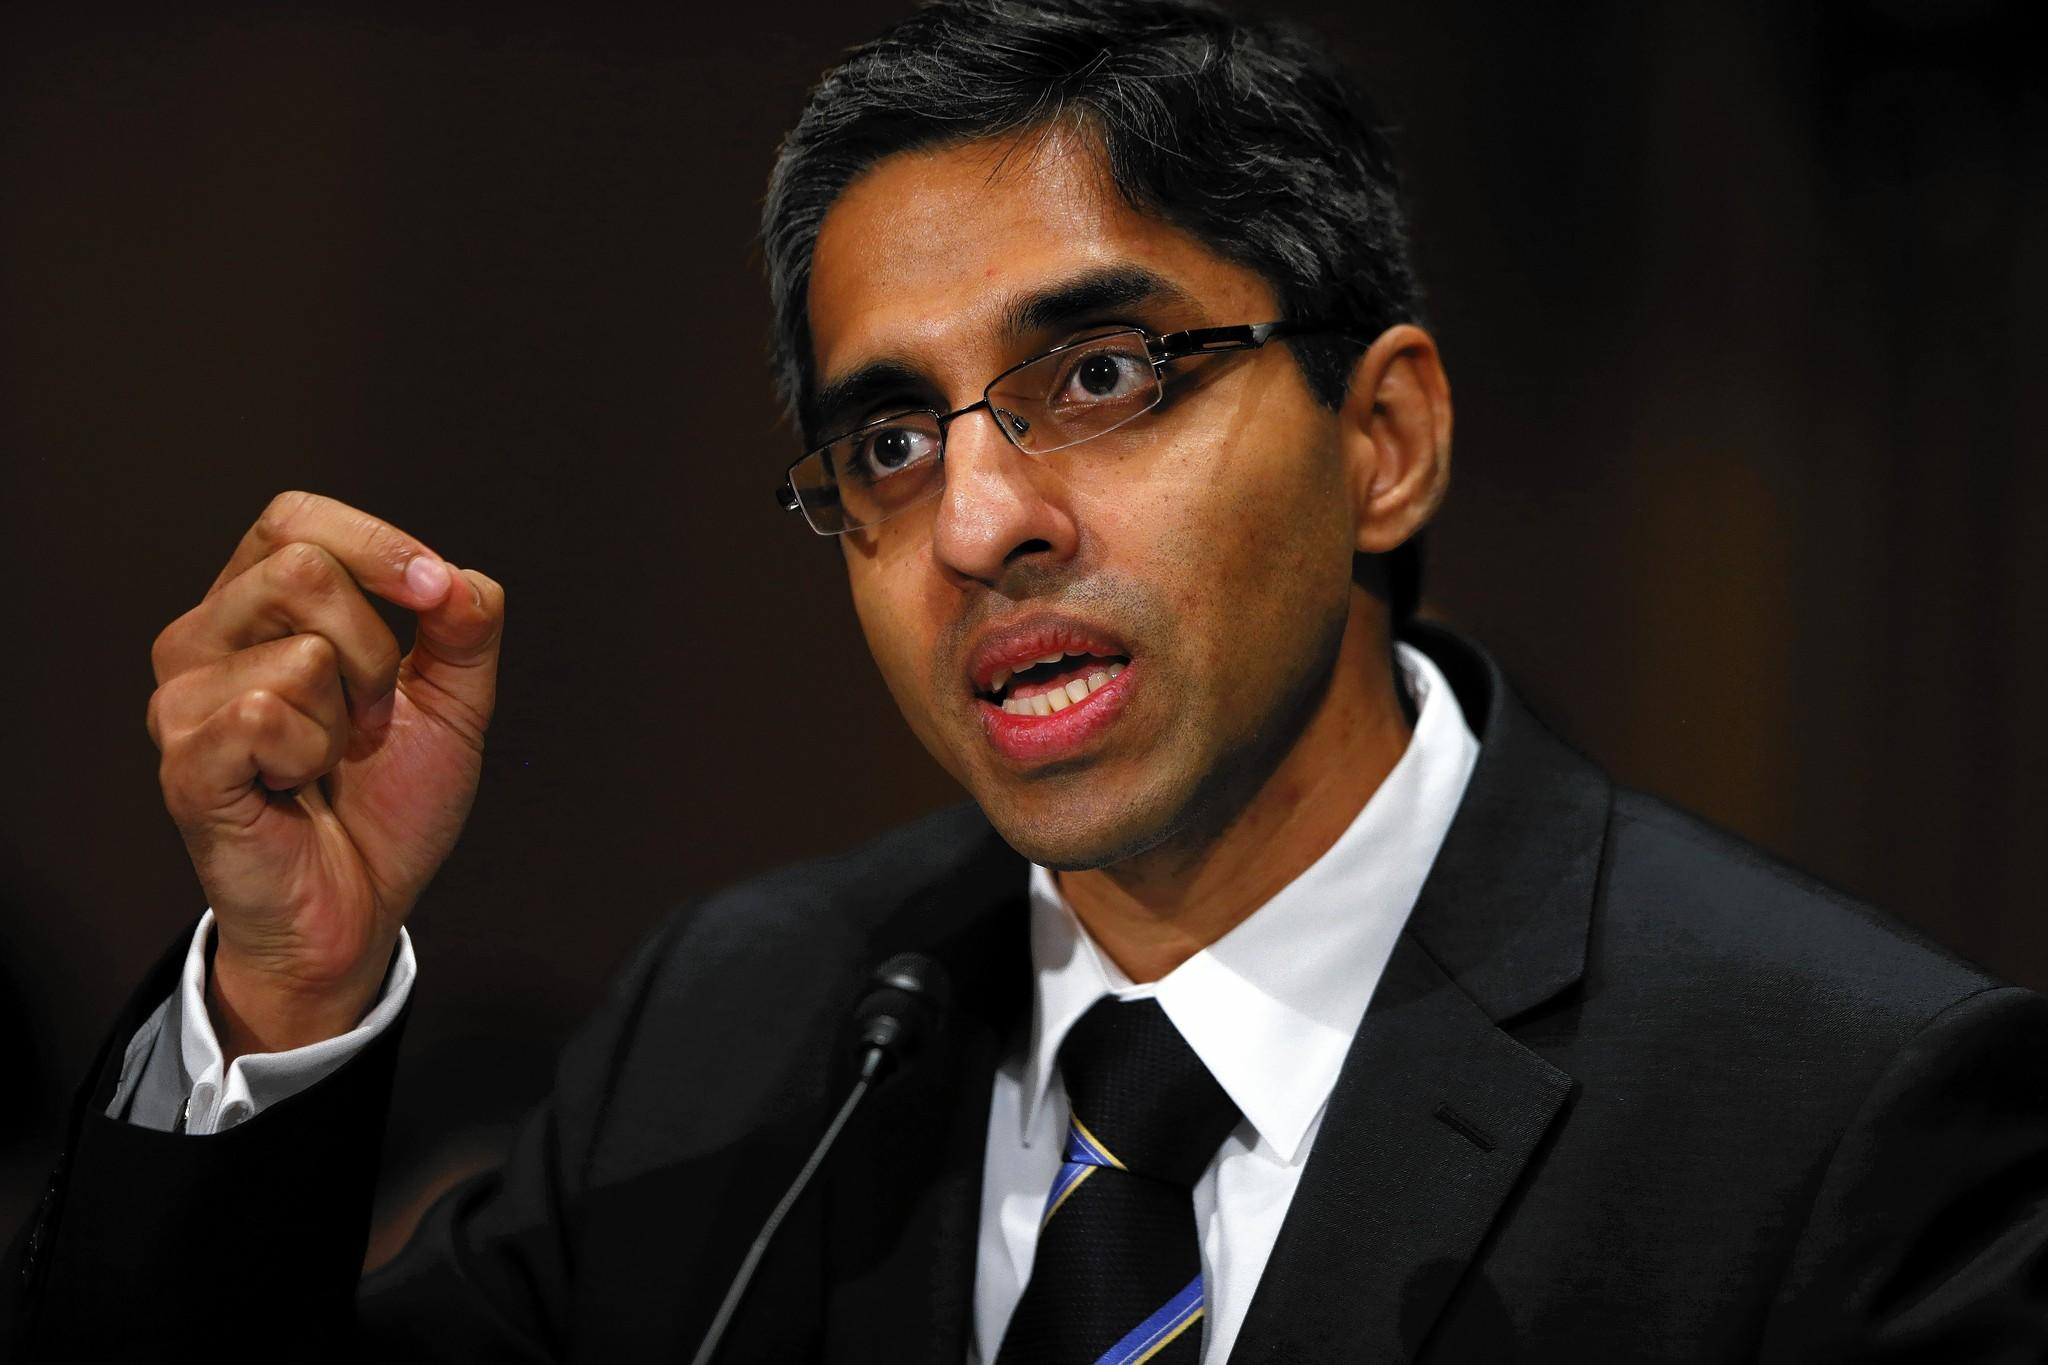 Vivek Hallegere Murthy, President Obama's nominee to become surgeon general, testifies at his confirmation hearing before the Senate Health, Education, Labor and Pensions Committee.